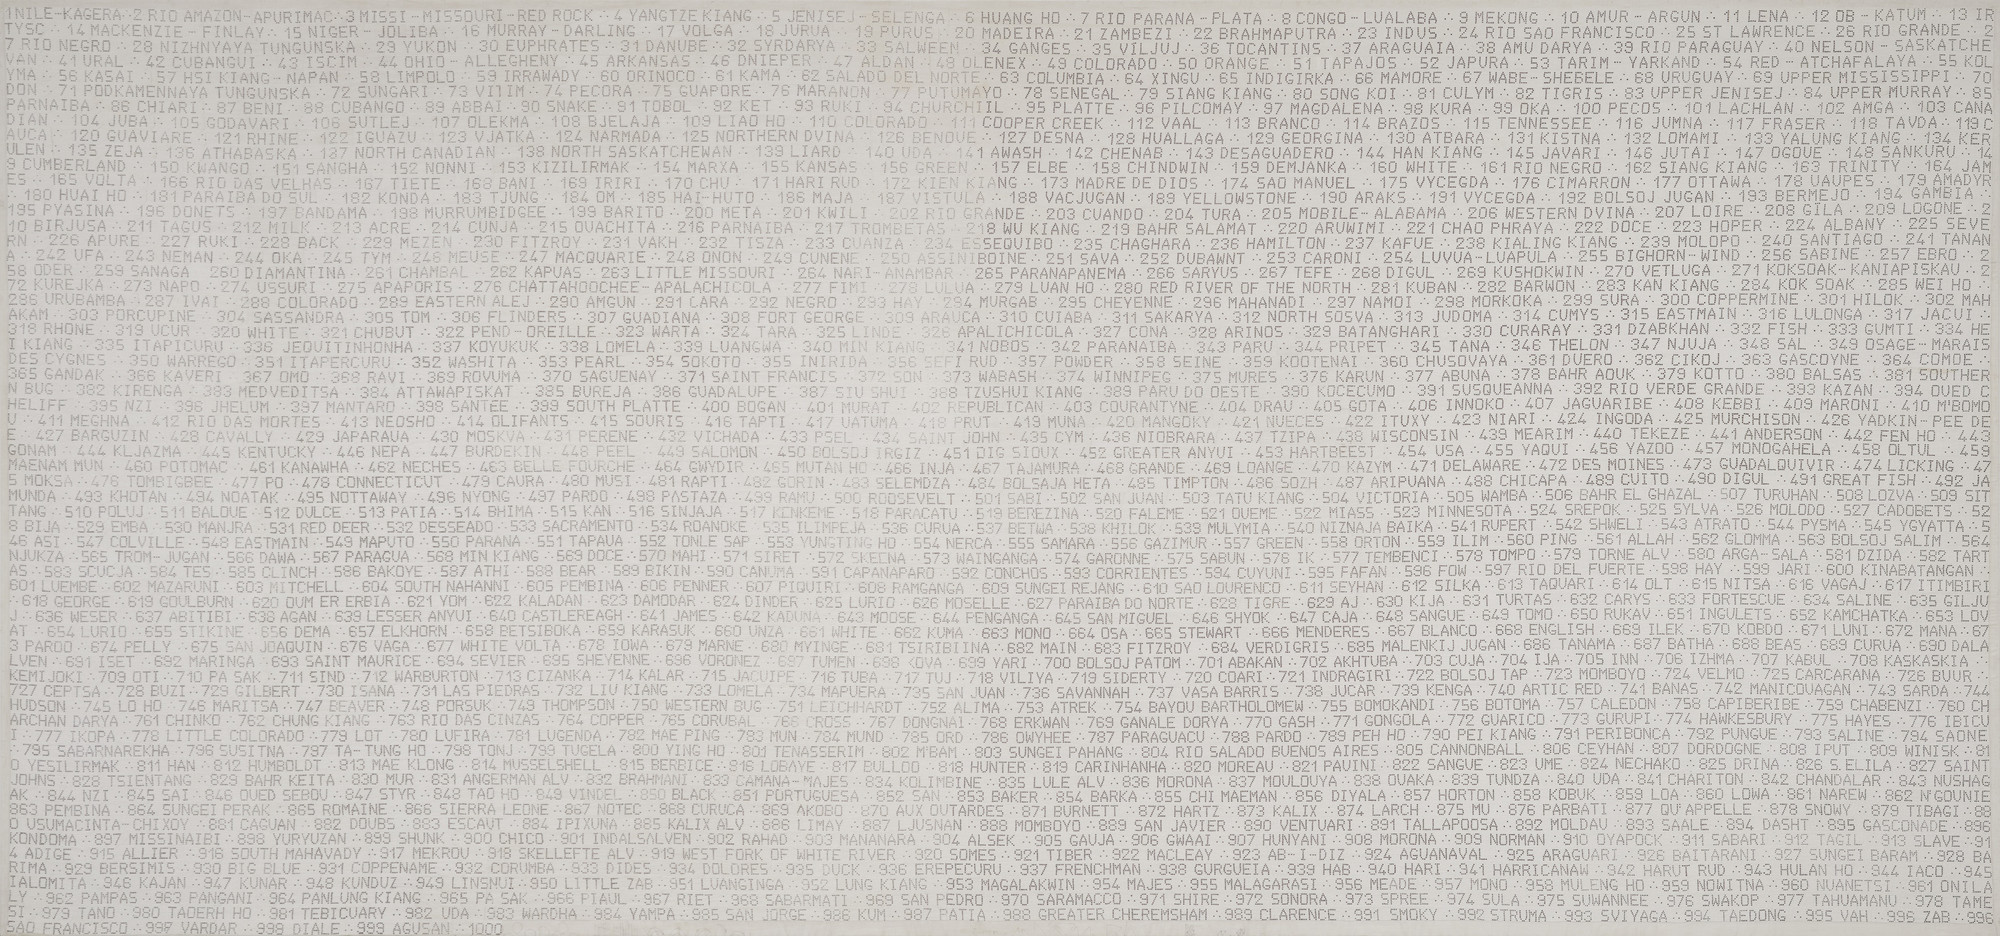 Alighiero Boetti. The Thousand Longest Rivers of the World. 1976-82